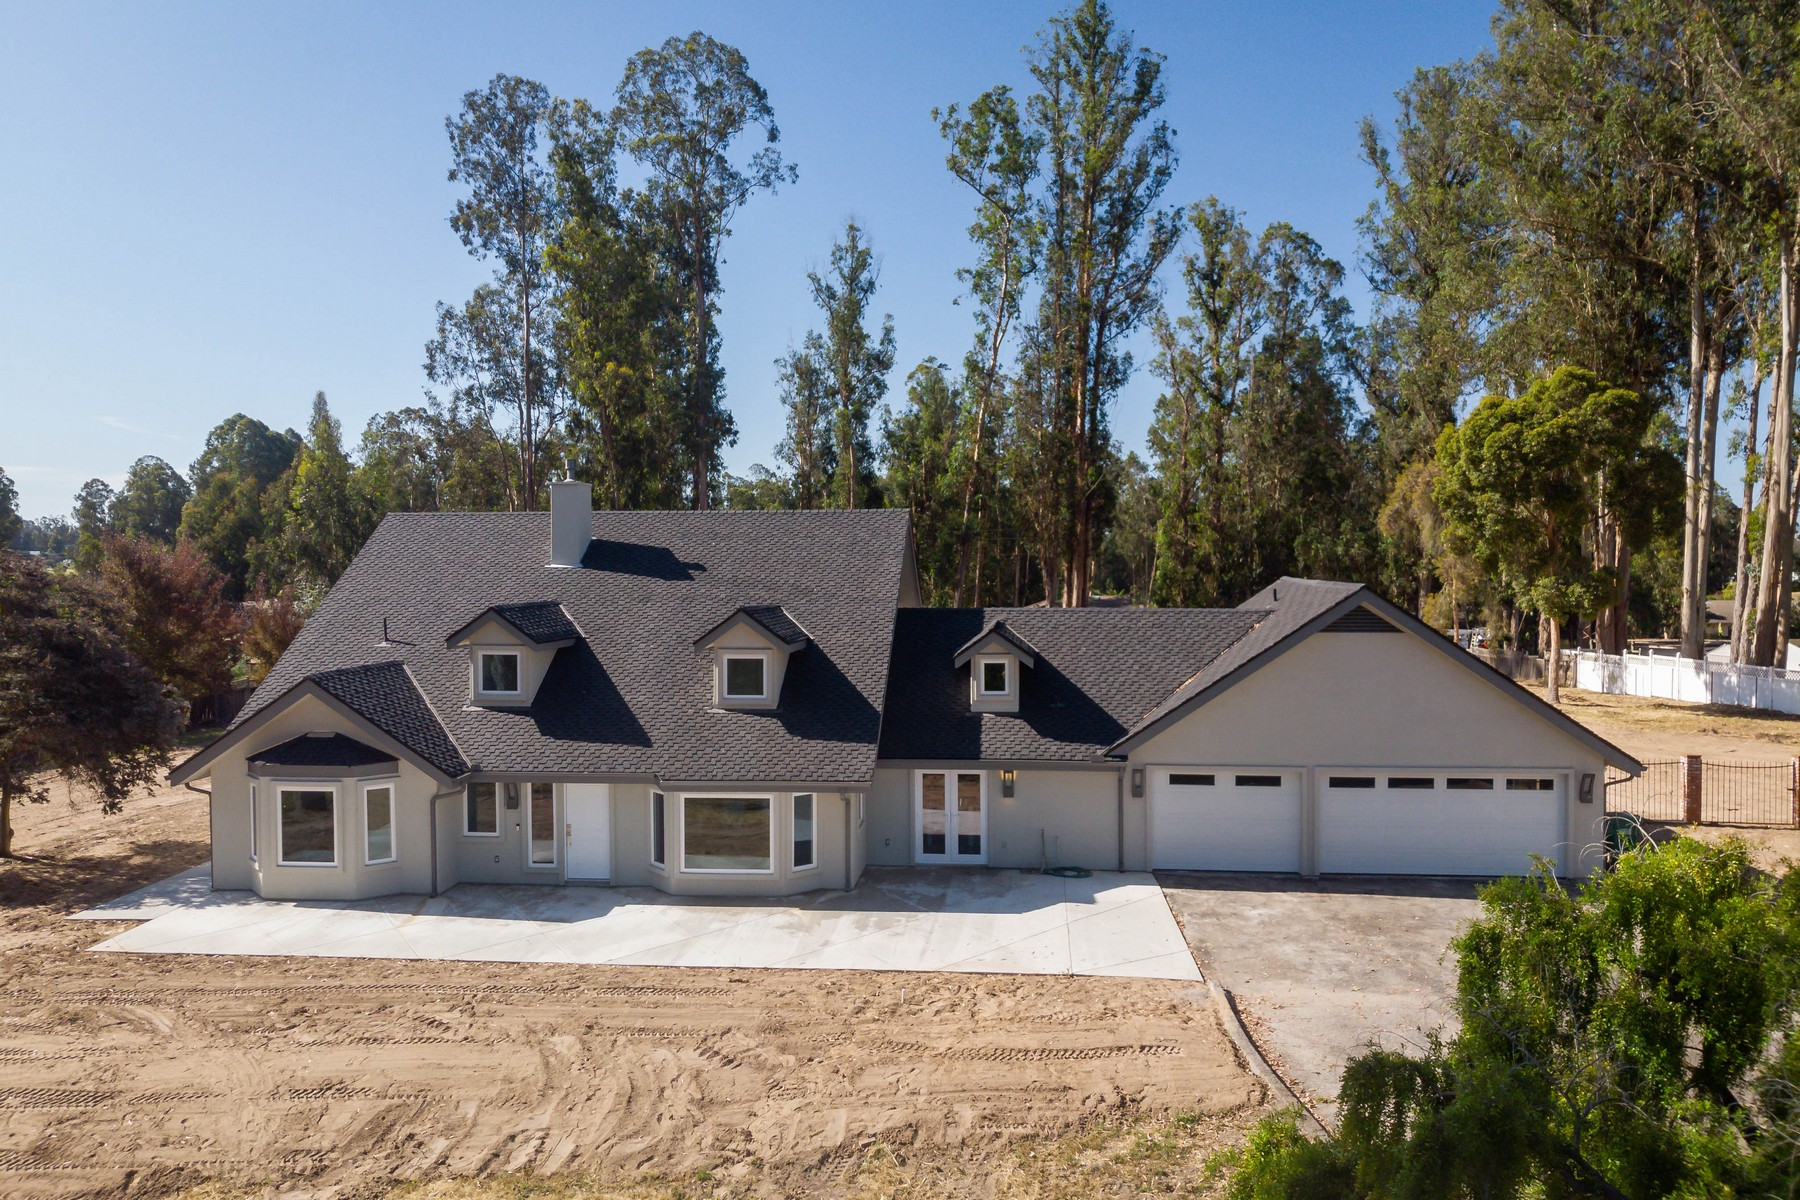 Single Family Homes for Active at Newly Rebuilt Mesa Home 2081 Laguna Negra Lane Arroyo Grande, California 93420 United States